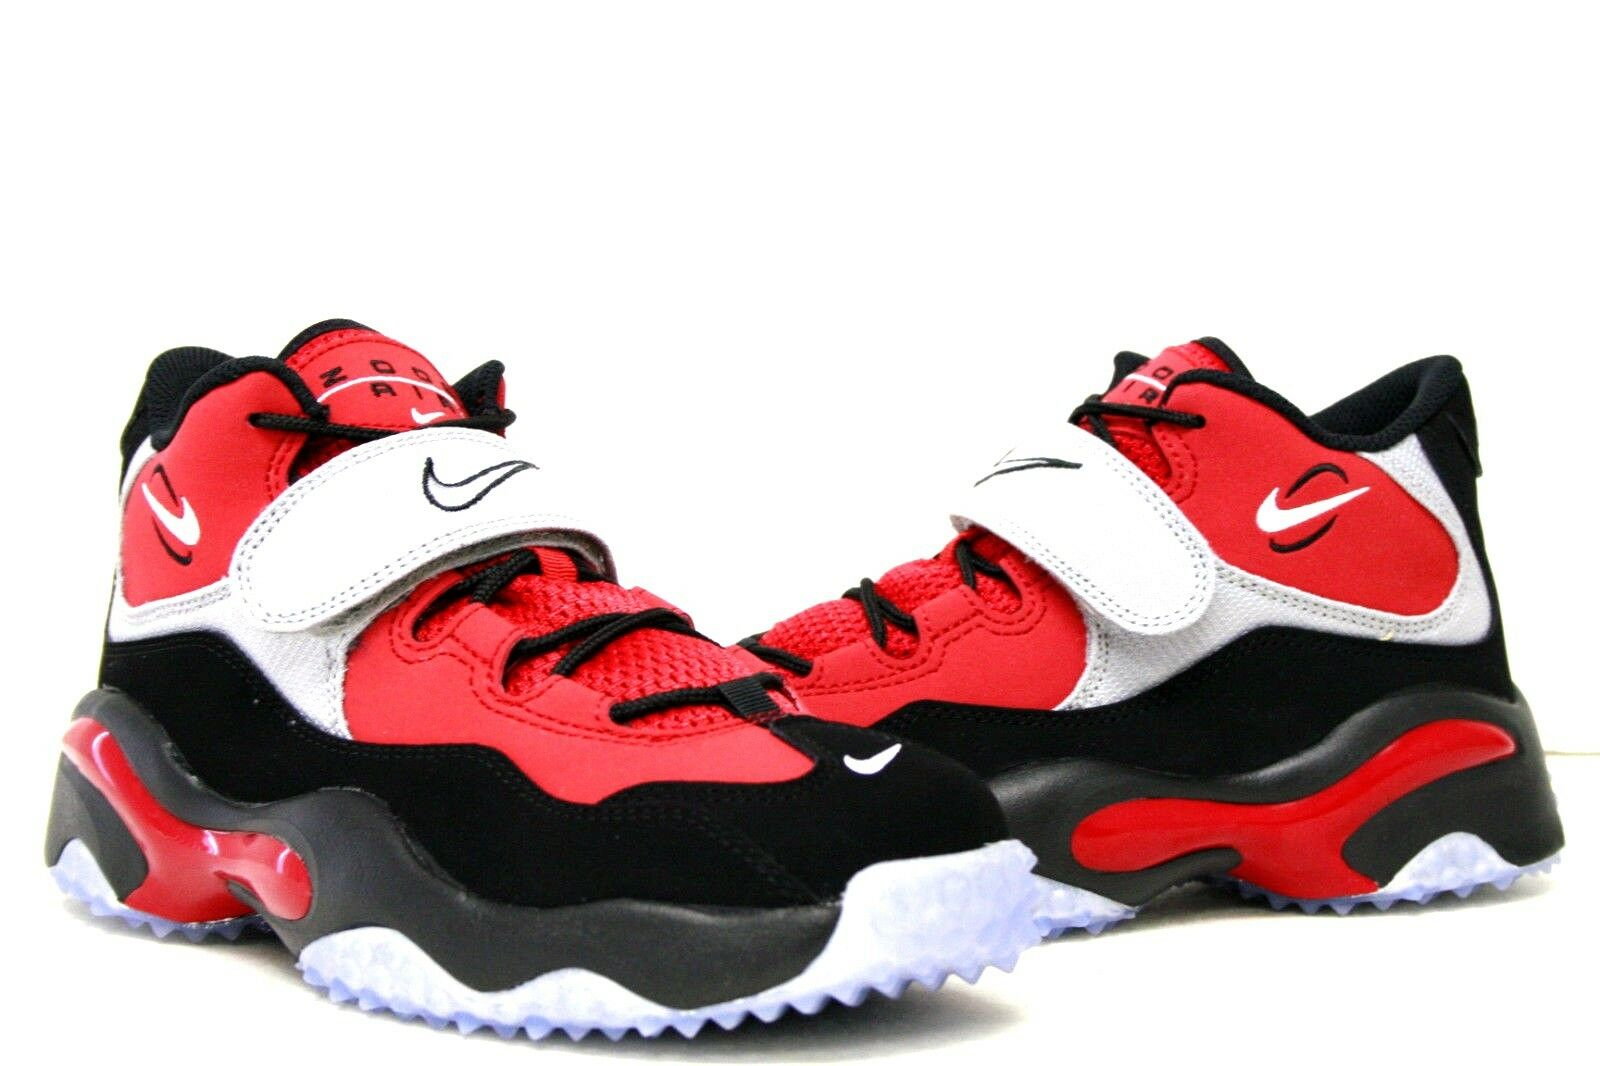 Nike Air Zoom Turf (GS) Shoes 643230-600 Youth Size: 4.5-6.5